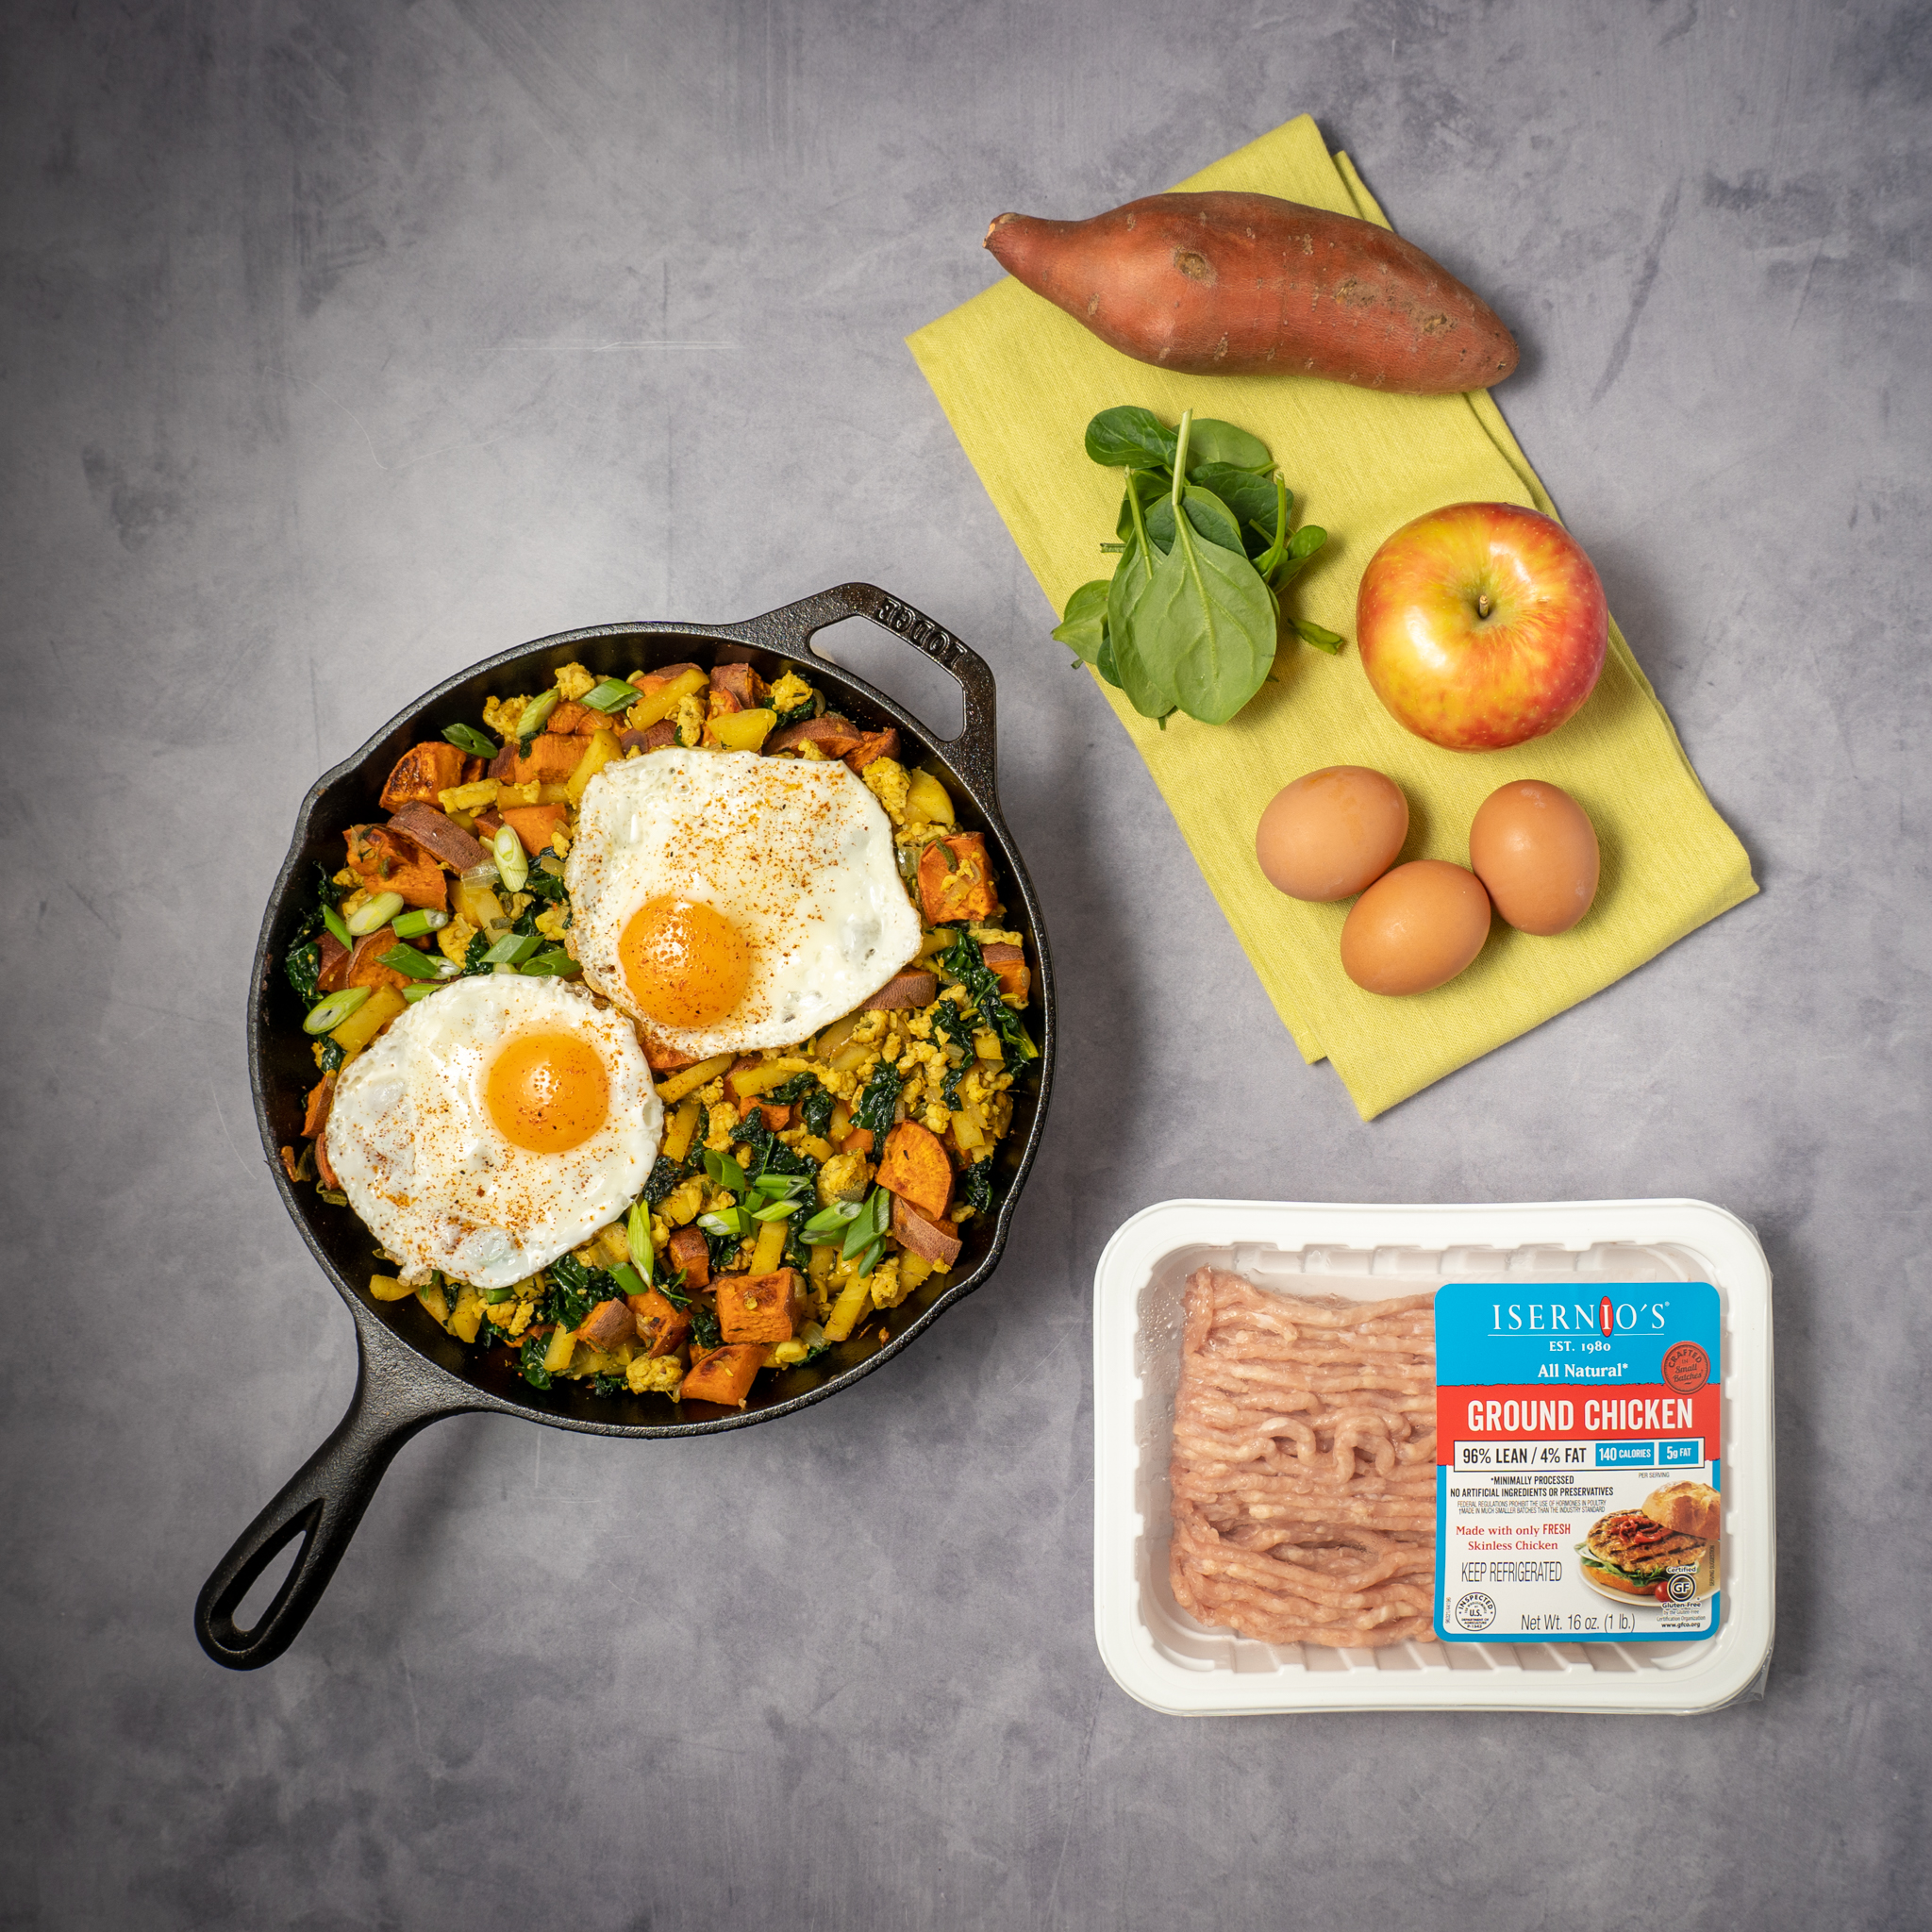 Ground chicken is the perfect addition to many classic dishes, including chili, enchiladas, sandwich wraps, and breakfast scrambles.